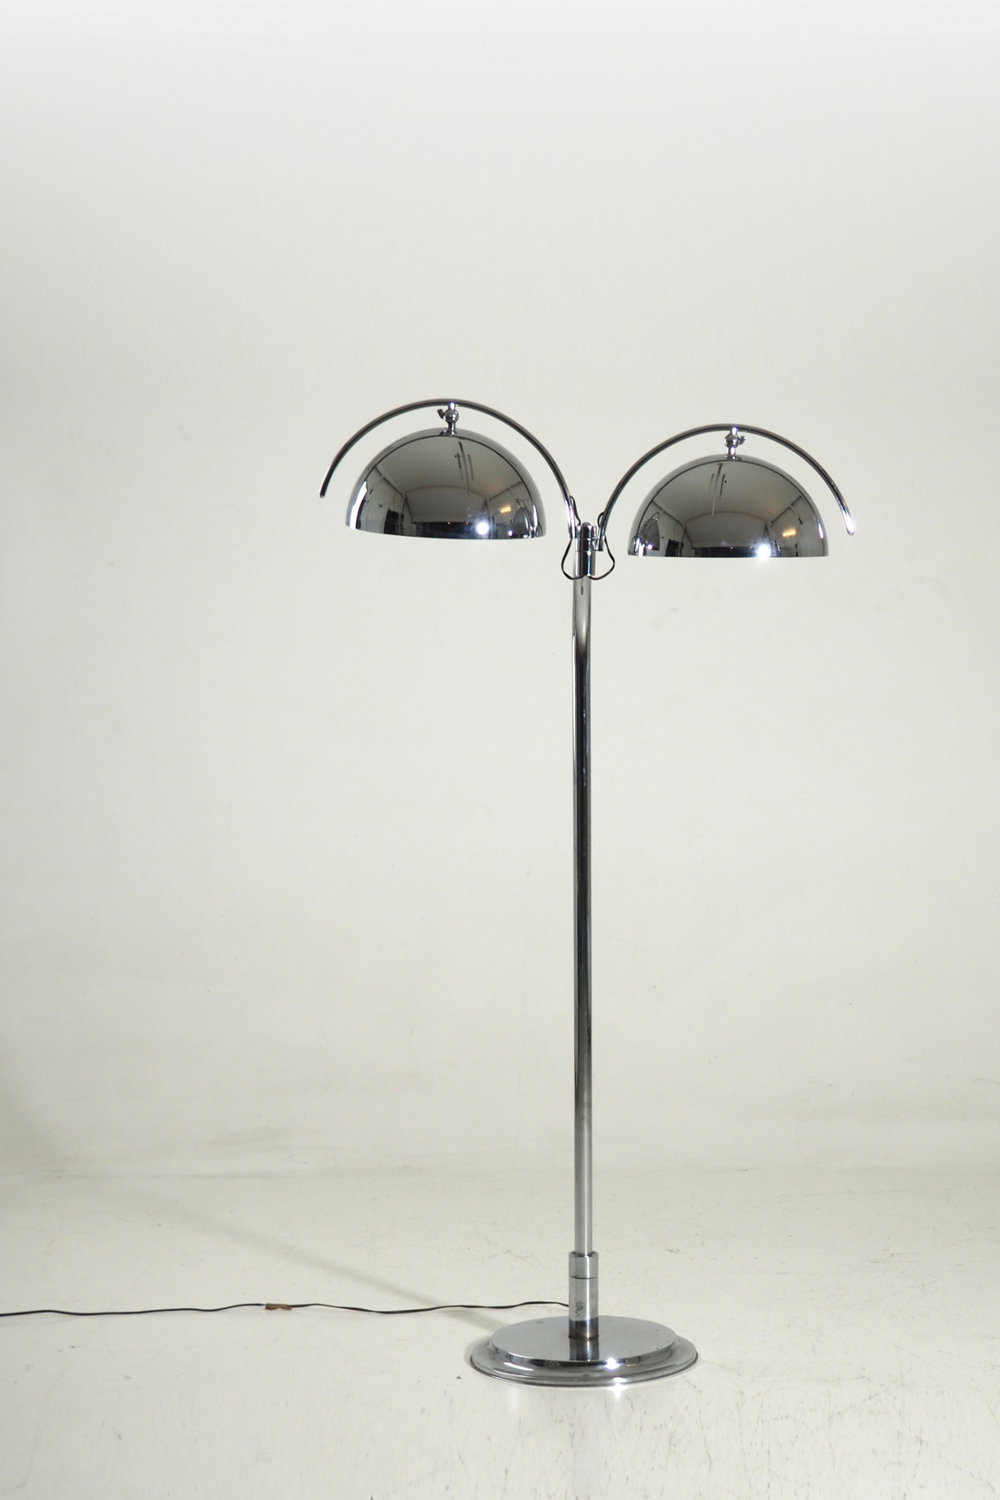 Very rare Italian lamp in chromed steel, 60's / 70's